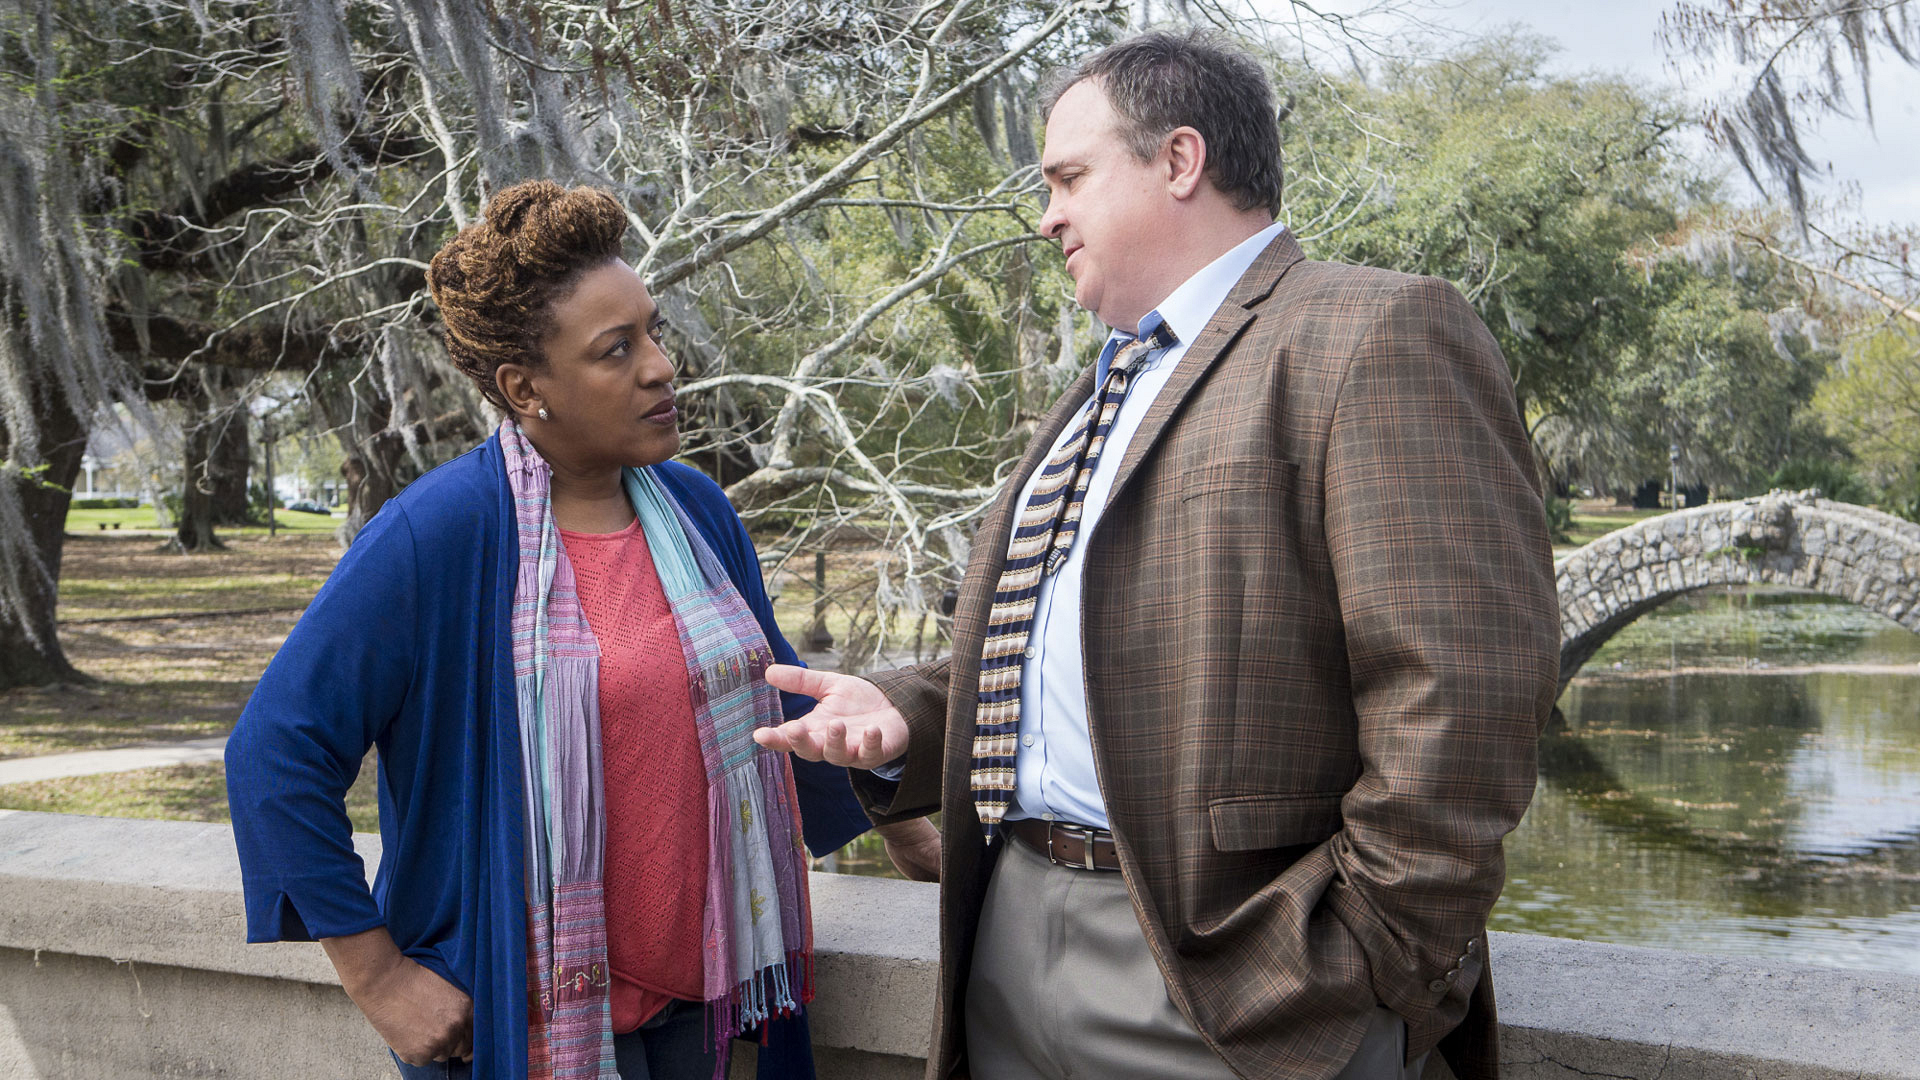 CCH Pounder as Dr. Loretta Wade and Gary Basaraba as Dr. Steven Bellamy